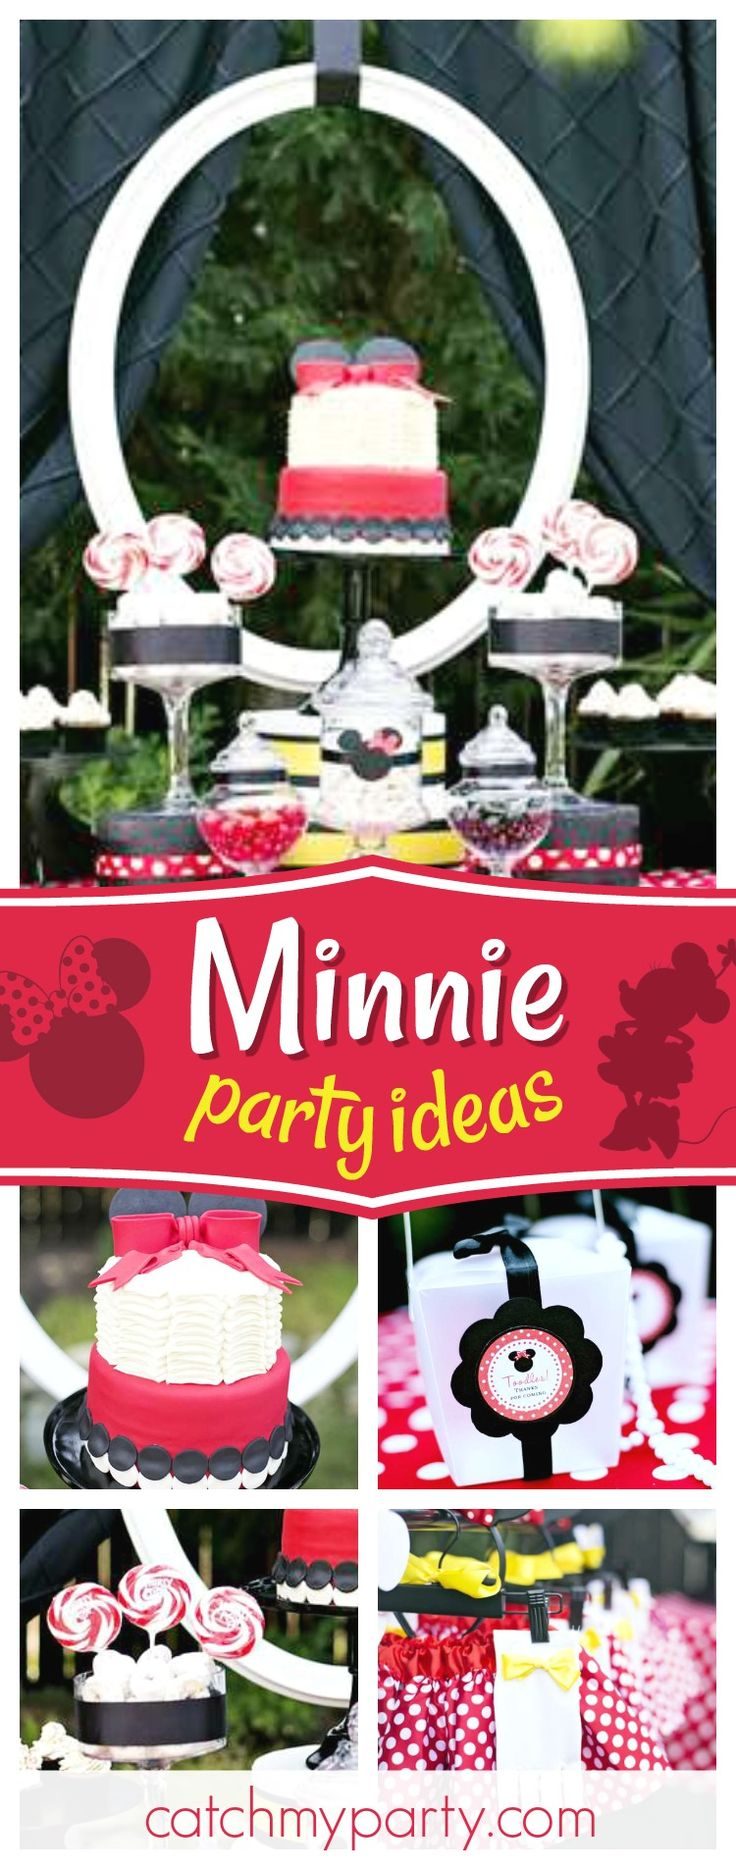 Take a look at this pretty Minnie Mouse 5th birthday party! The Minnie Mouse costums are so cute!! See more party ideas and share yours at CatchMyparty.com #minniemouse #minnieparty